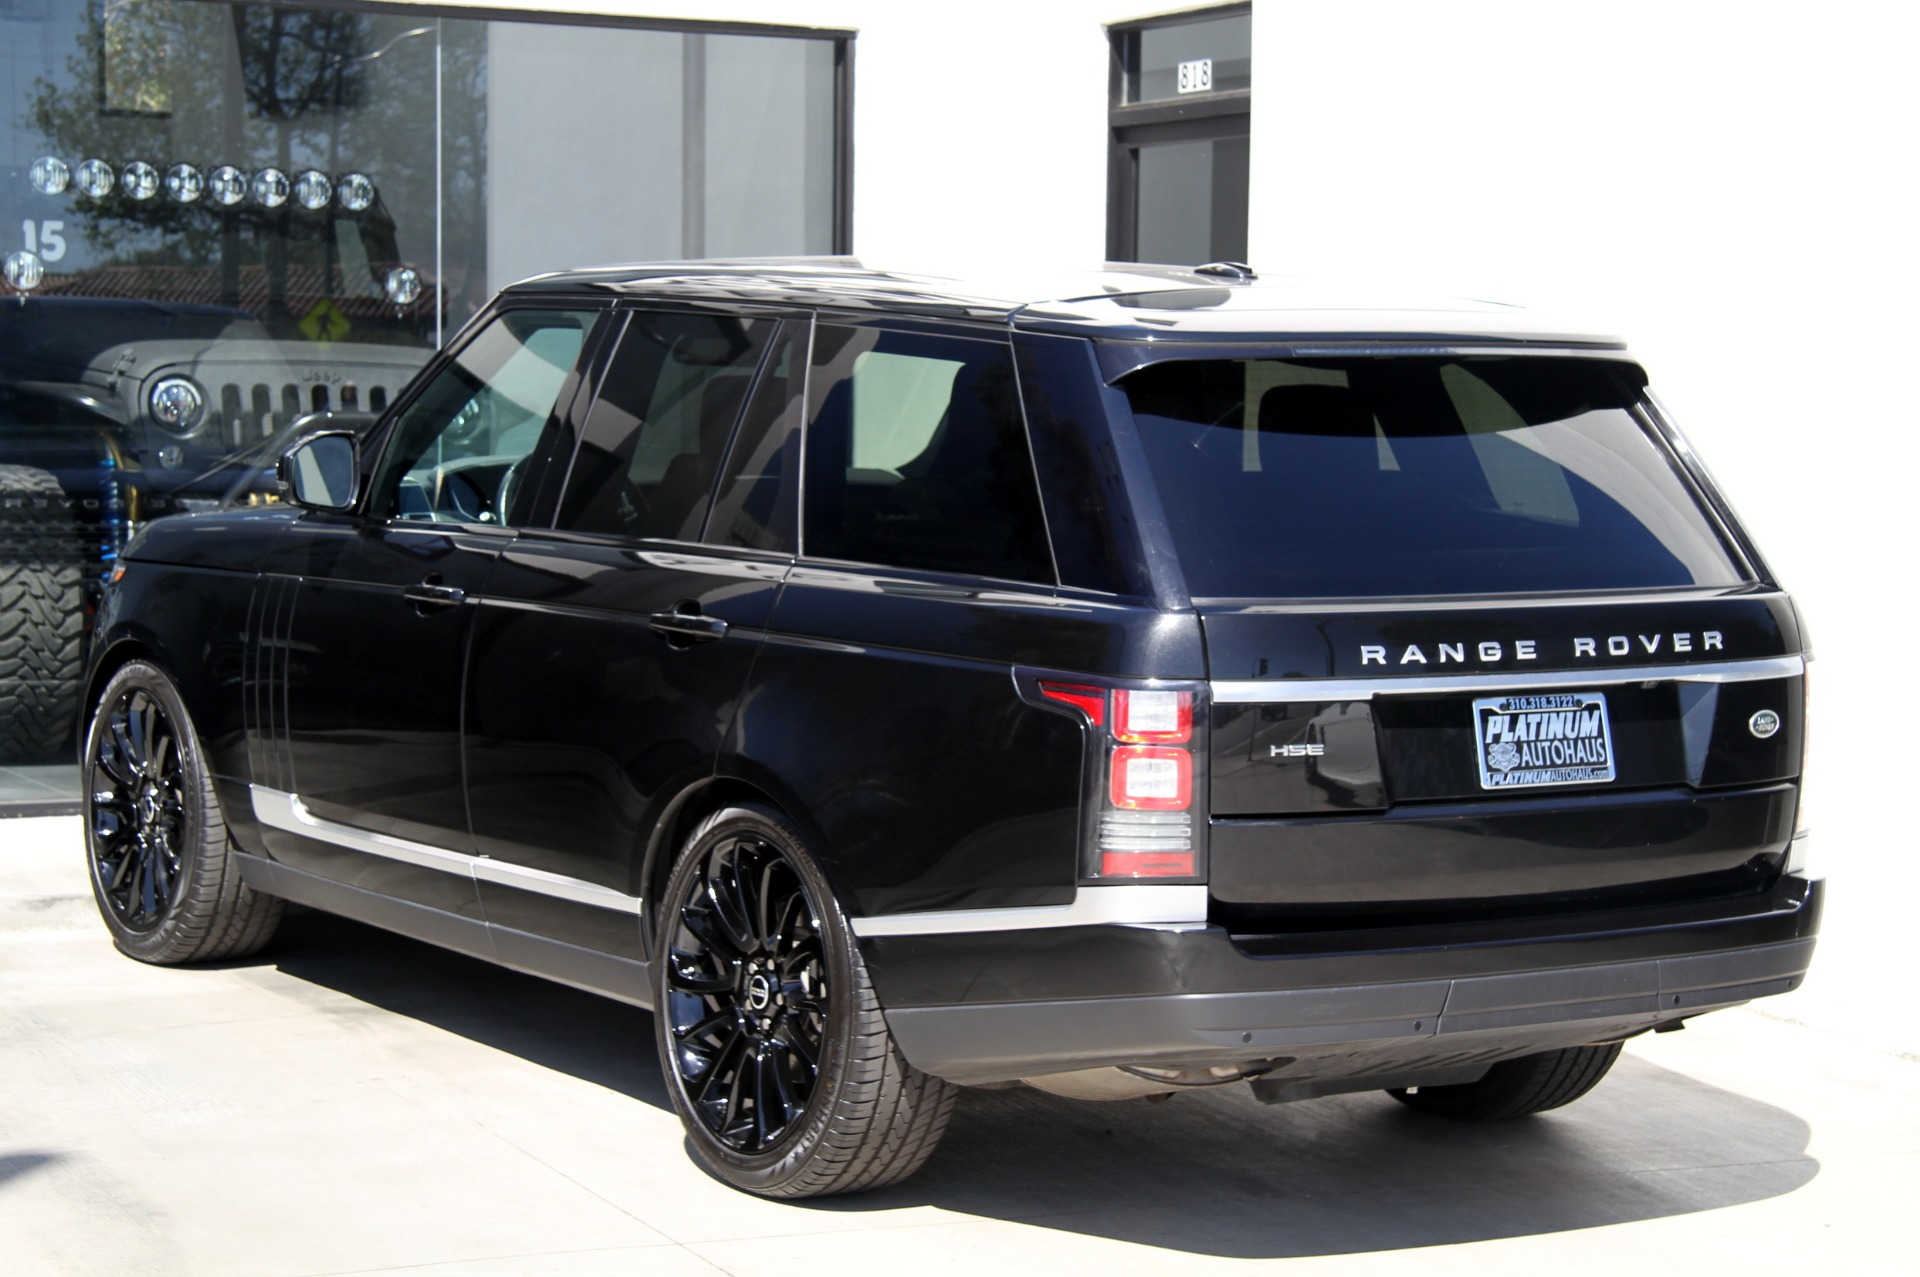 2015 land rover range rover hse stock 5972 for sale near redondo beach ca ca land rover dealer. Black Bedroom Furniture Sets. Home Design Ideas